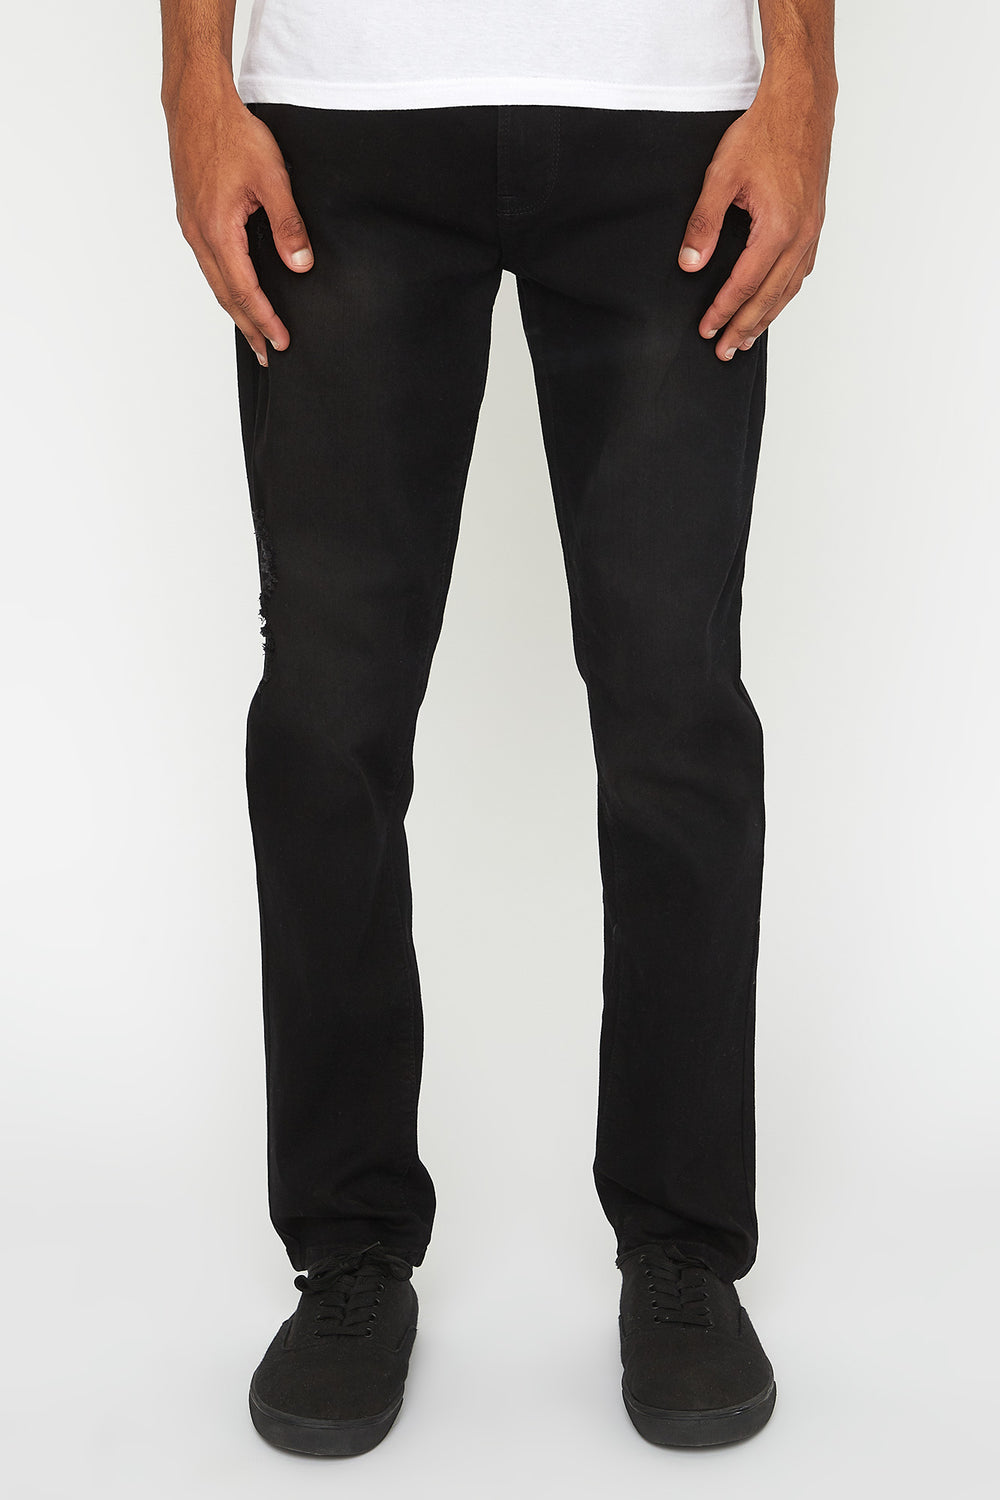 Zoo York Mens Distressed Black Stretch Slim Jeans Solid Black